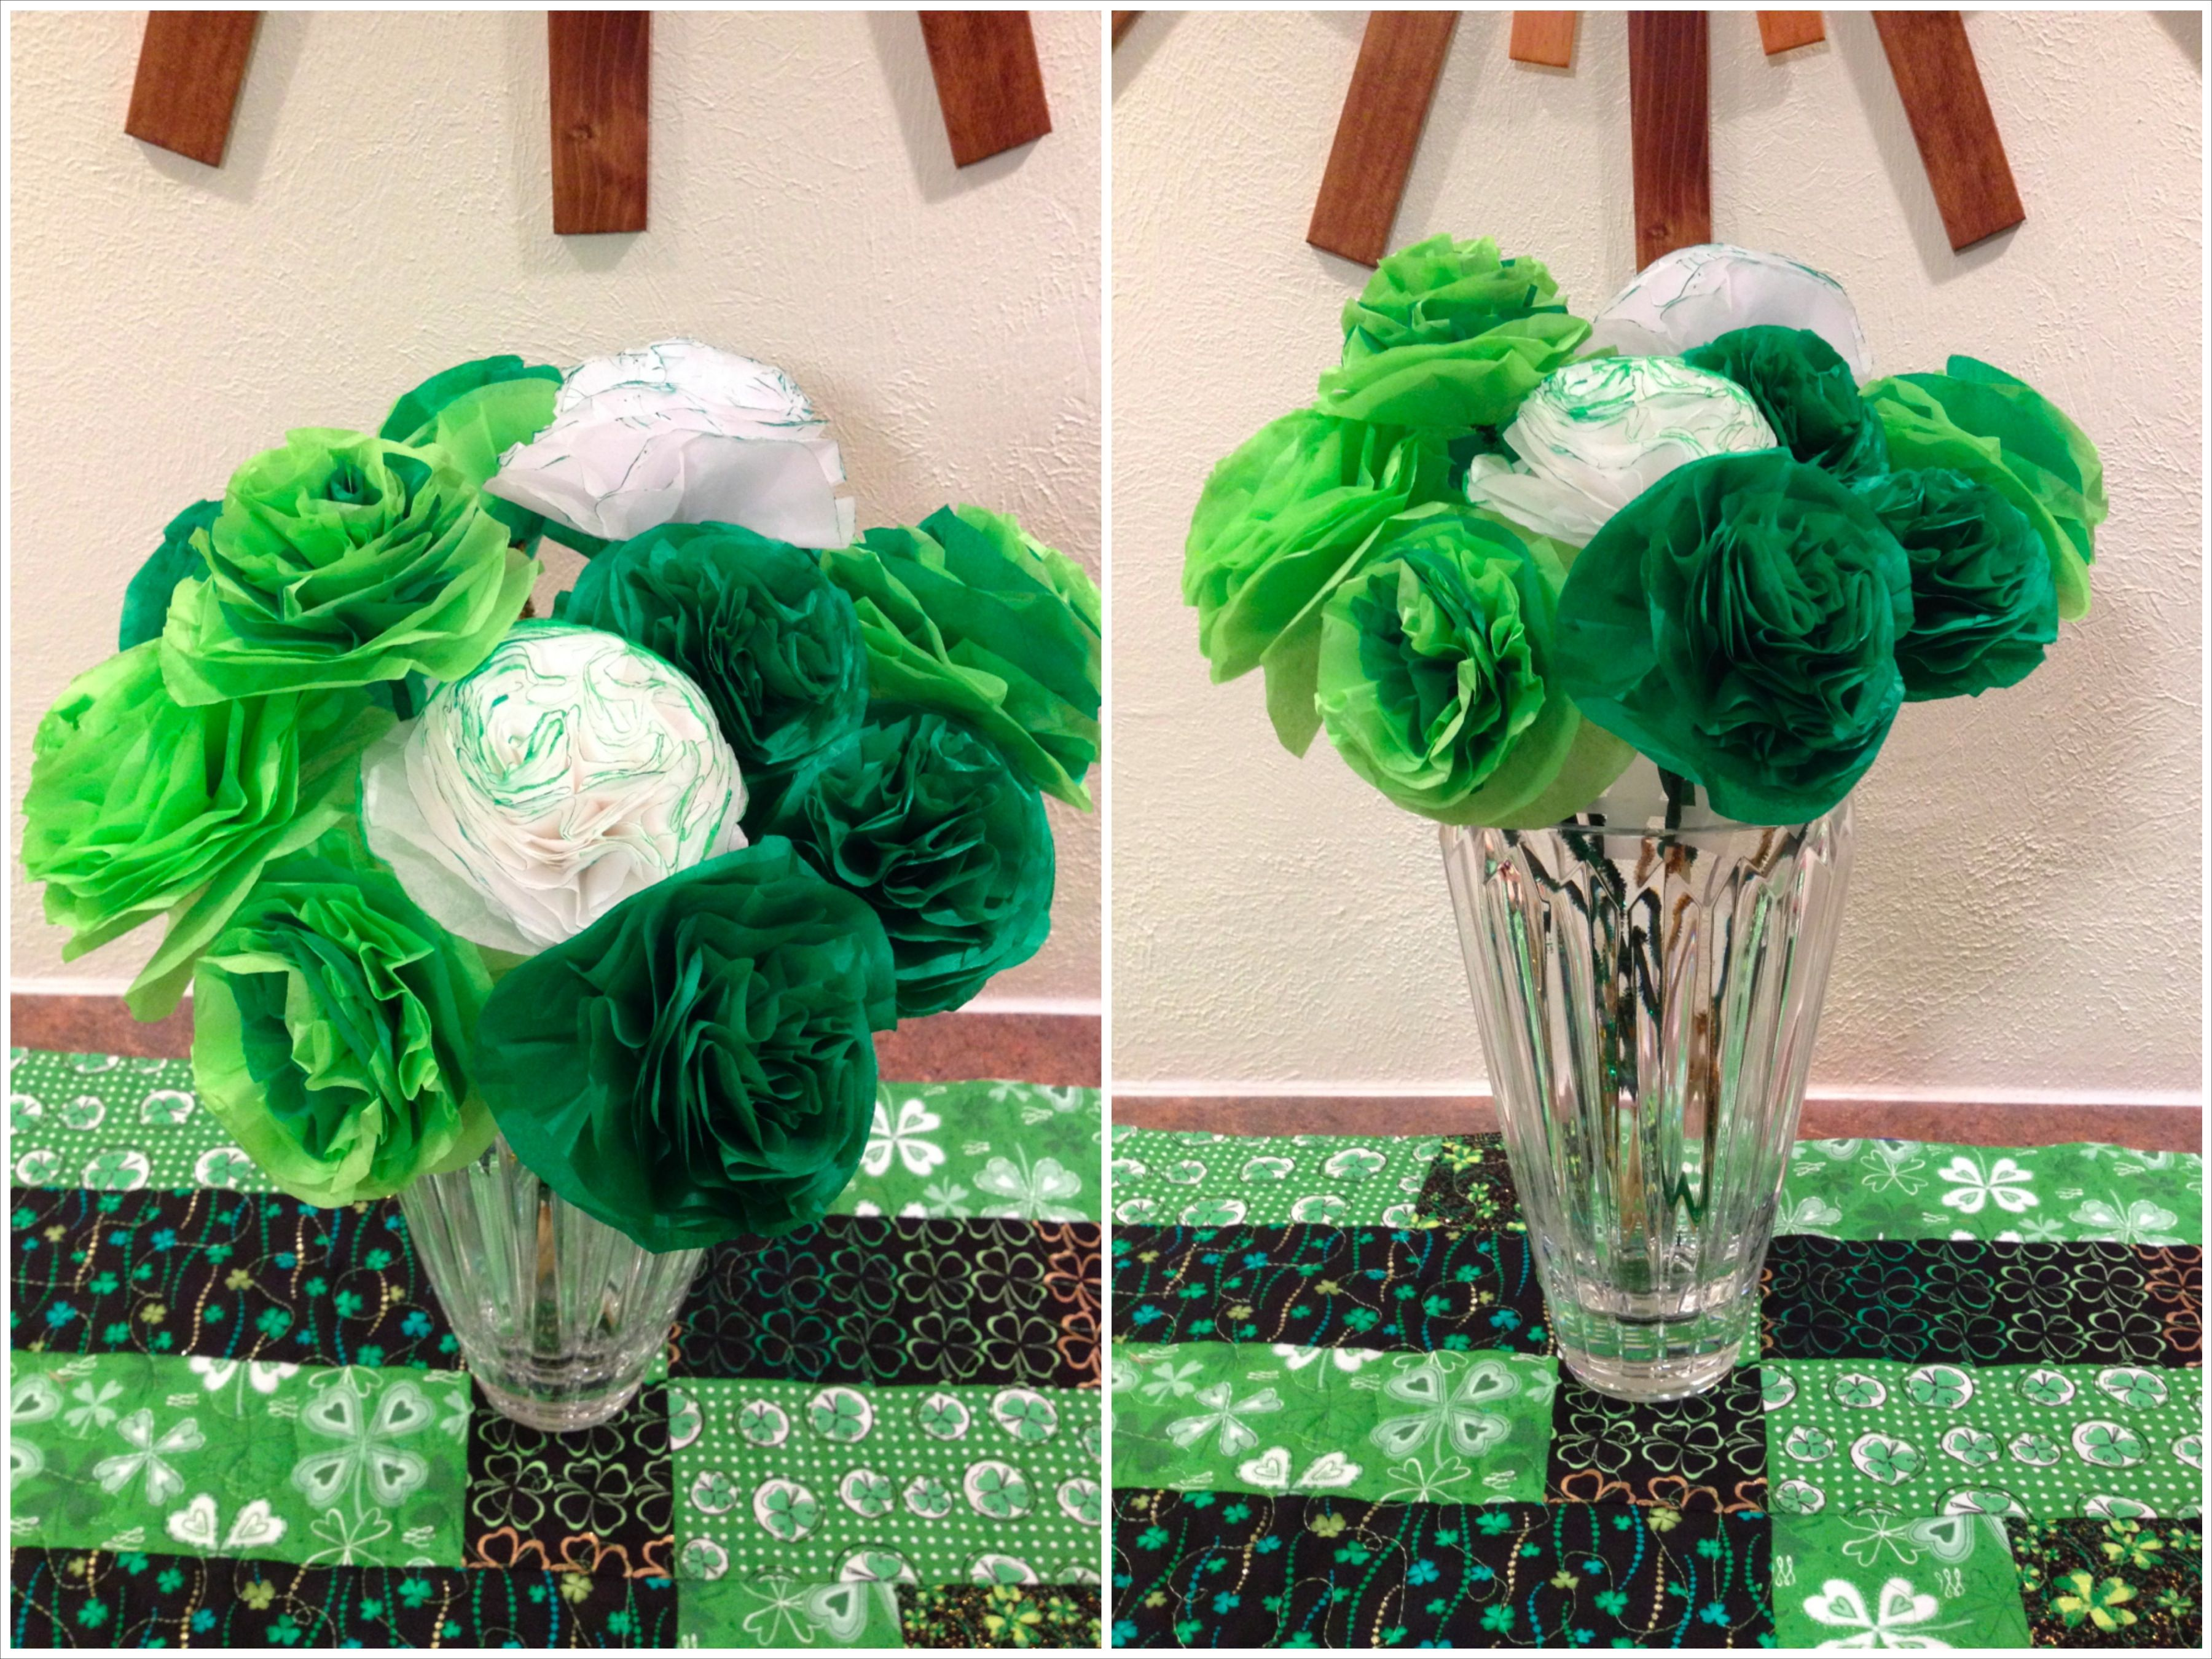 Pin By Stephanie Blum On Home Pinterest Tissue Paper Flowers And